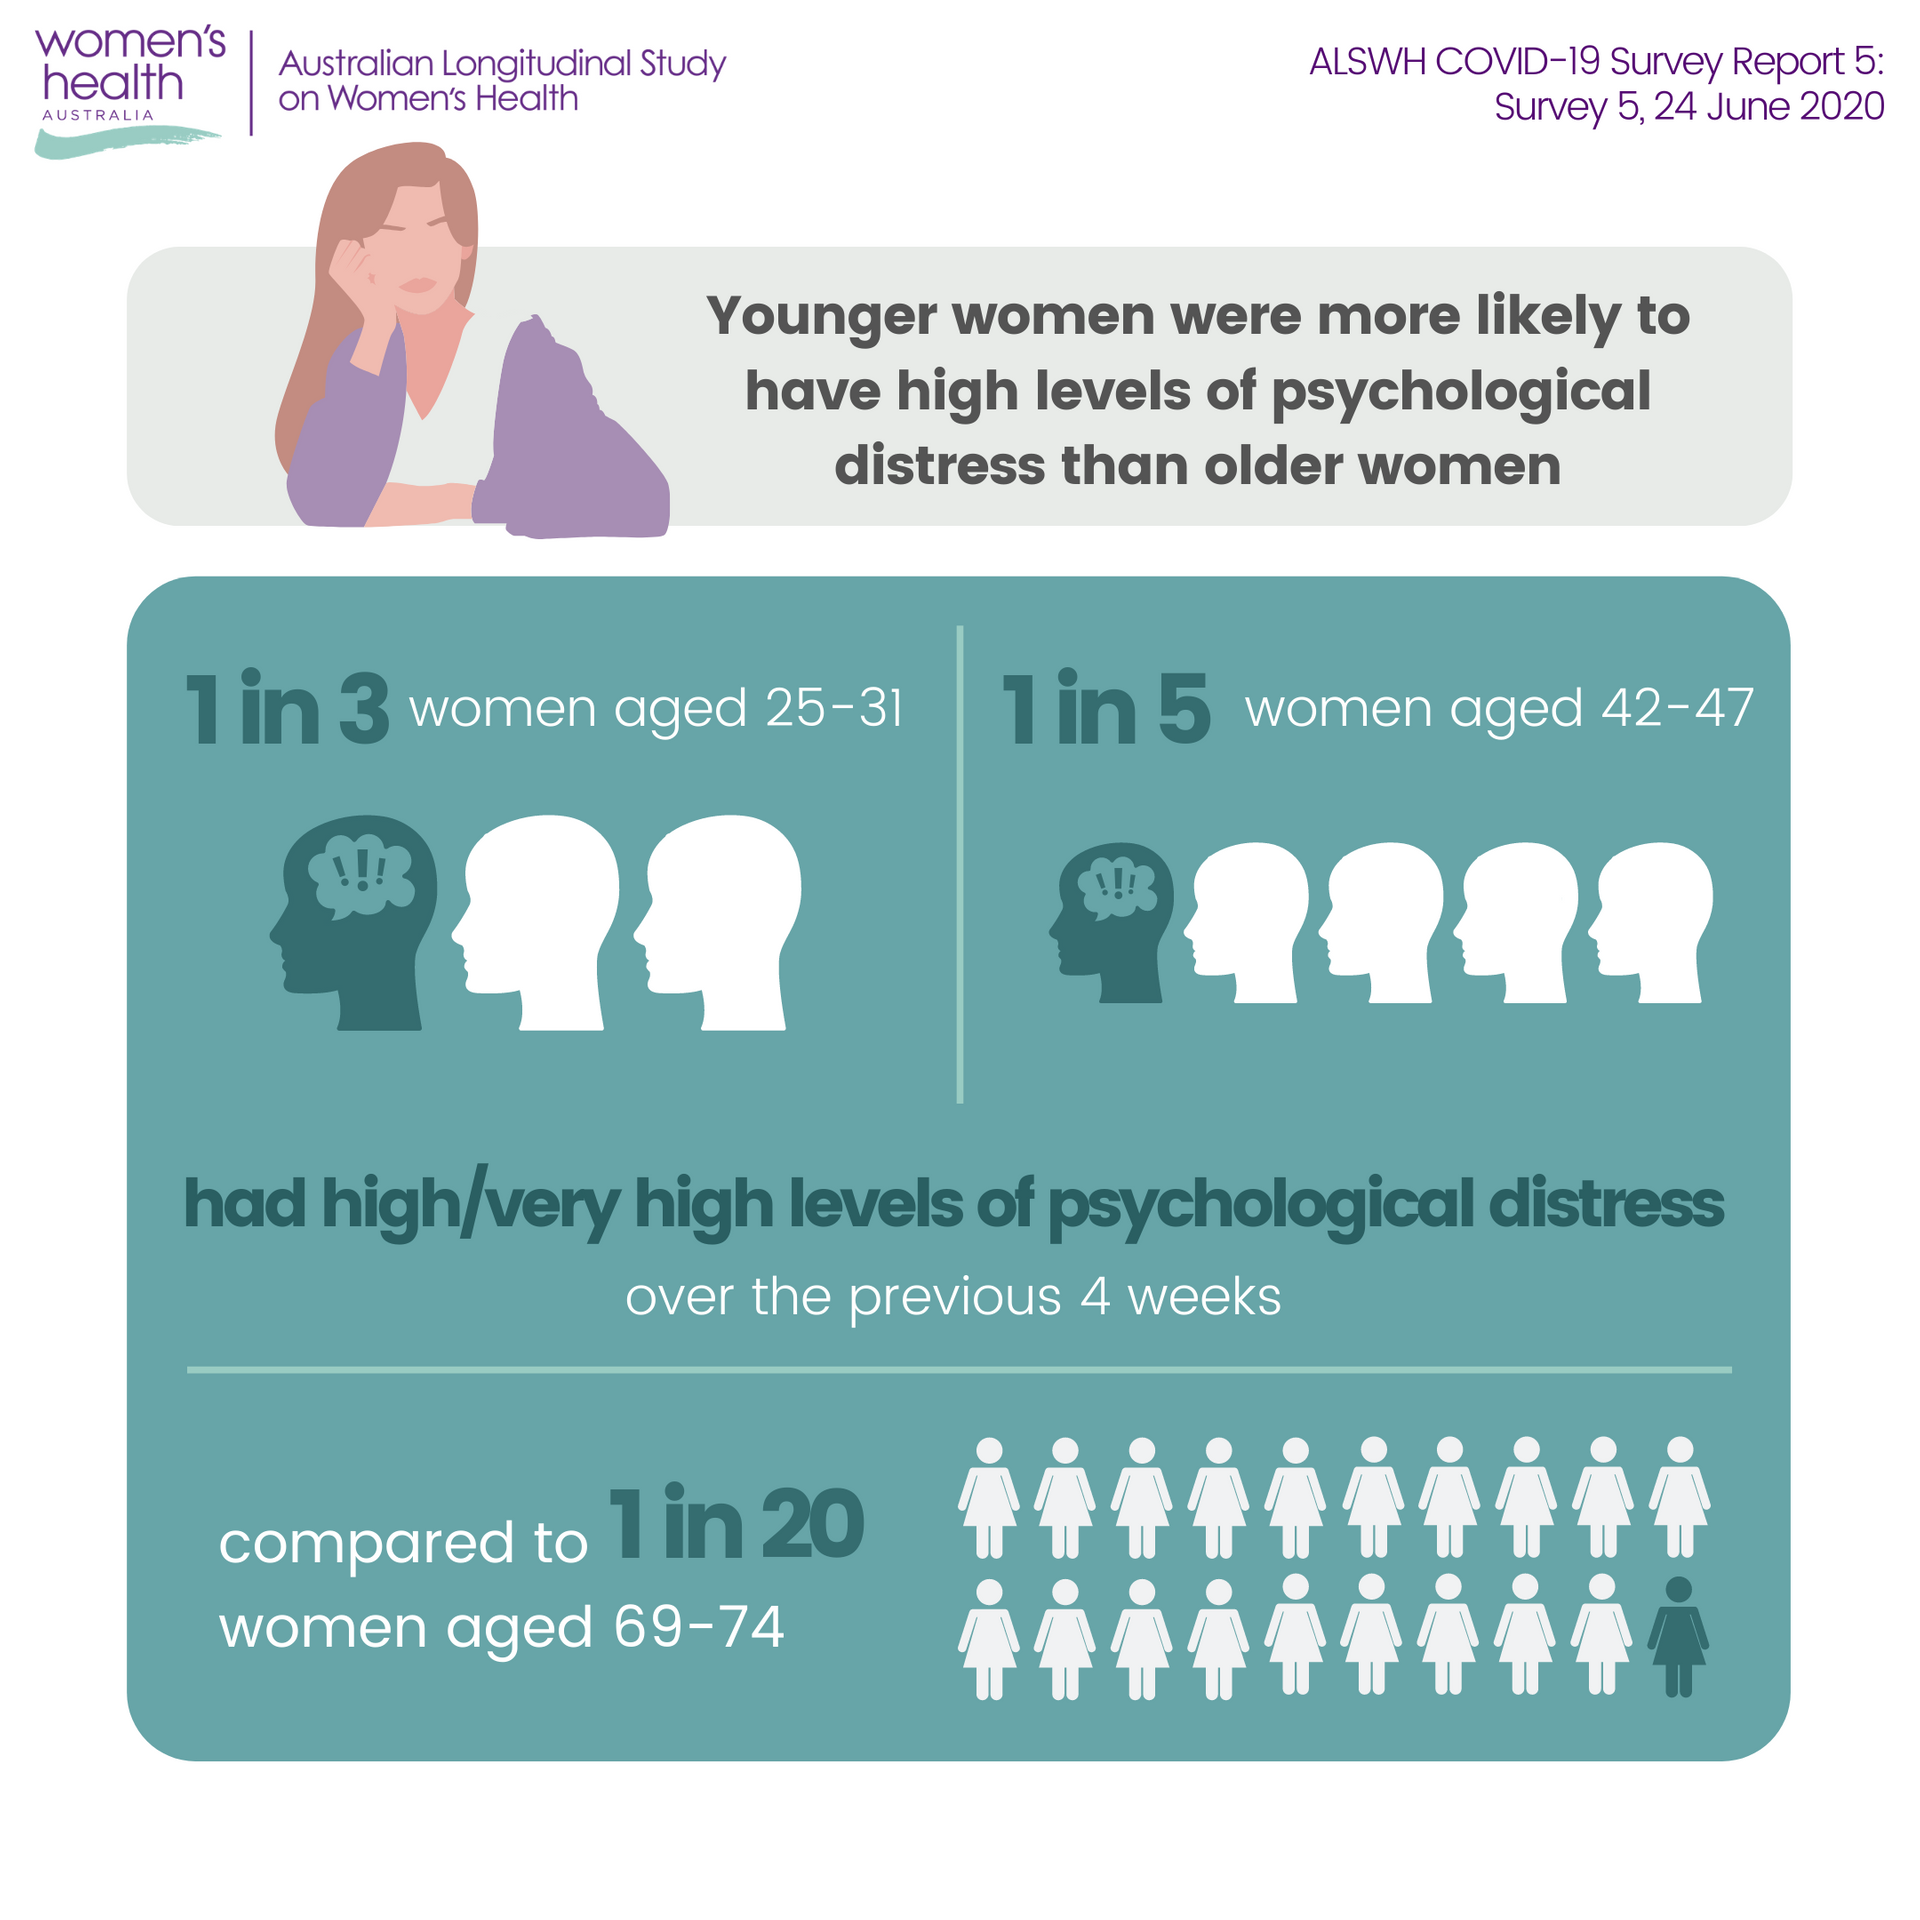 Infographic - ALSWH COVID-19 Survey 5, 1 in 3 women aged 25-31 reported high or very high levels of psychological distress